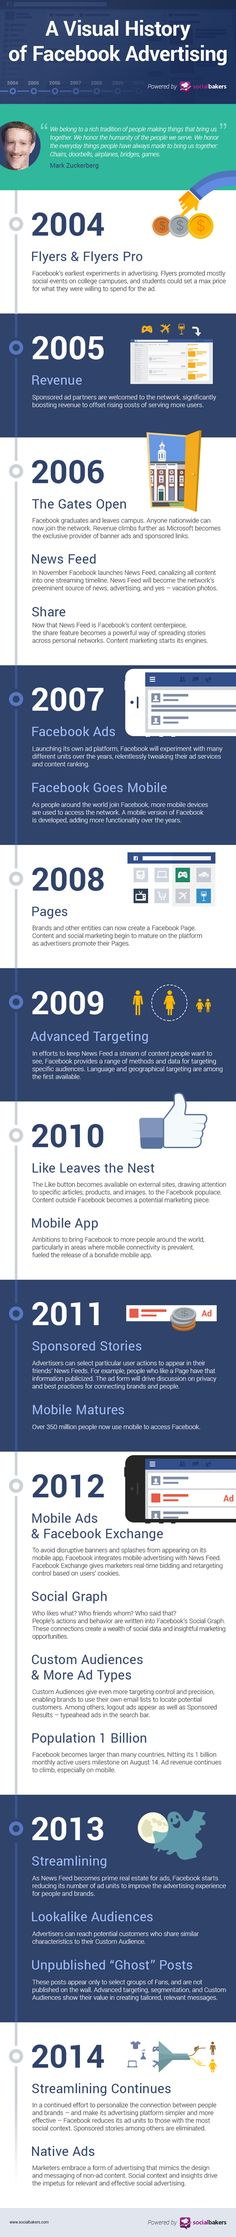 A visual history of #Facebook #Advertising